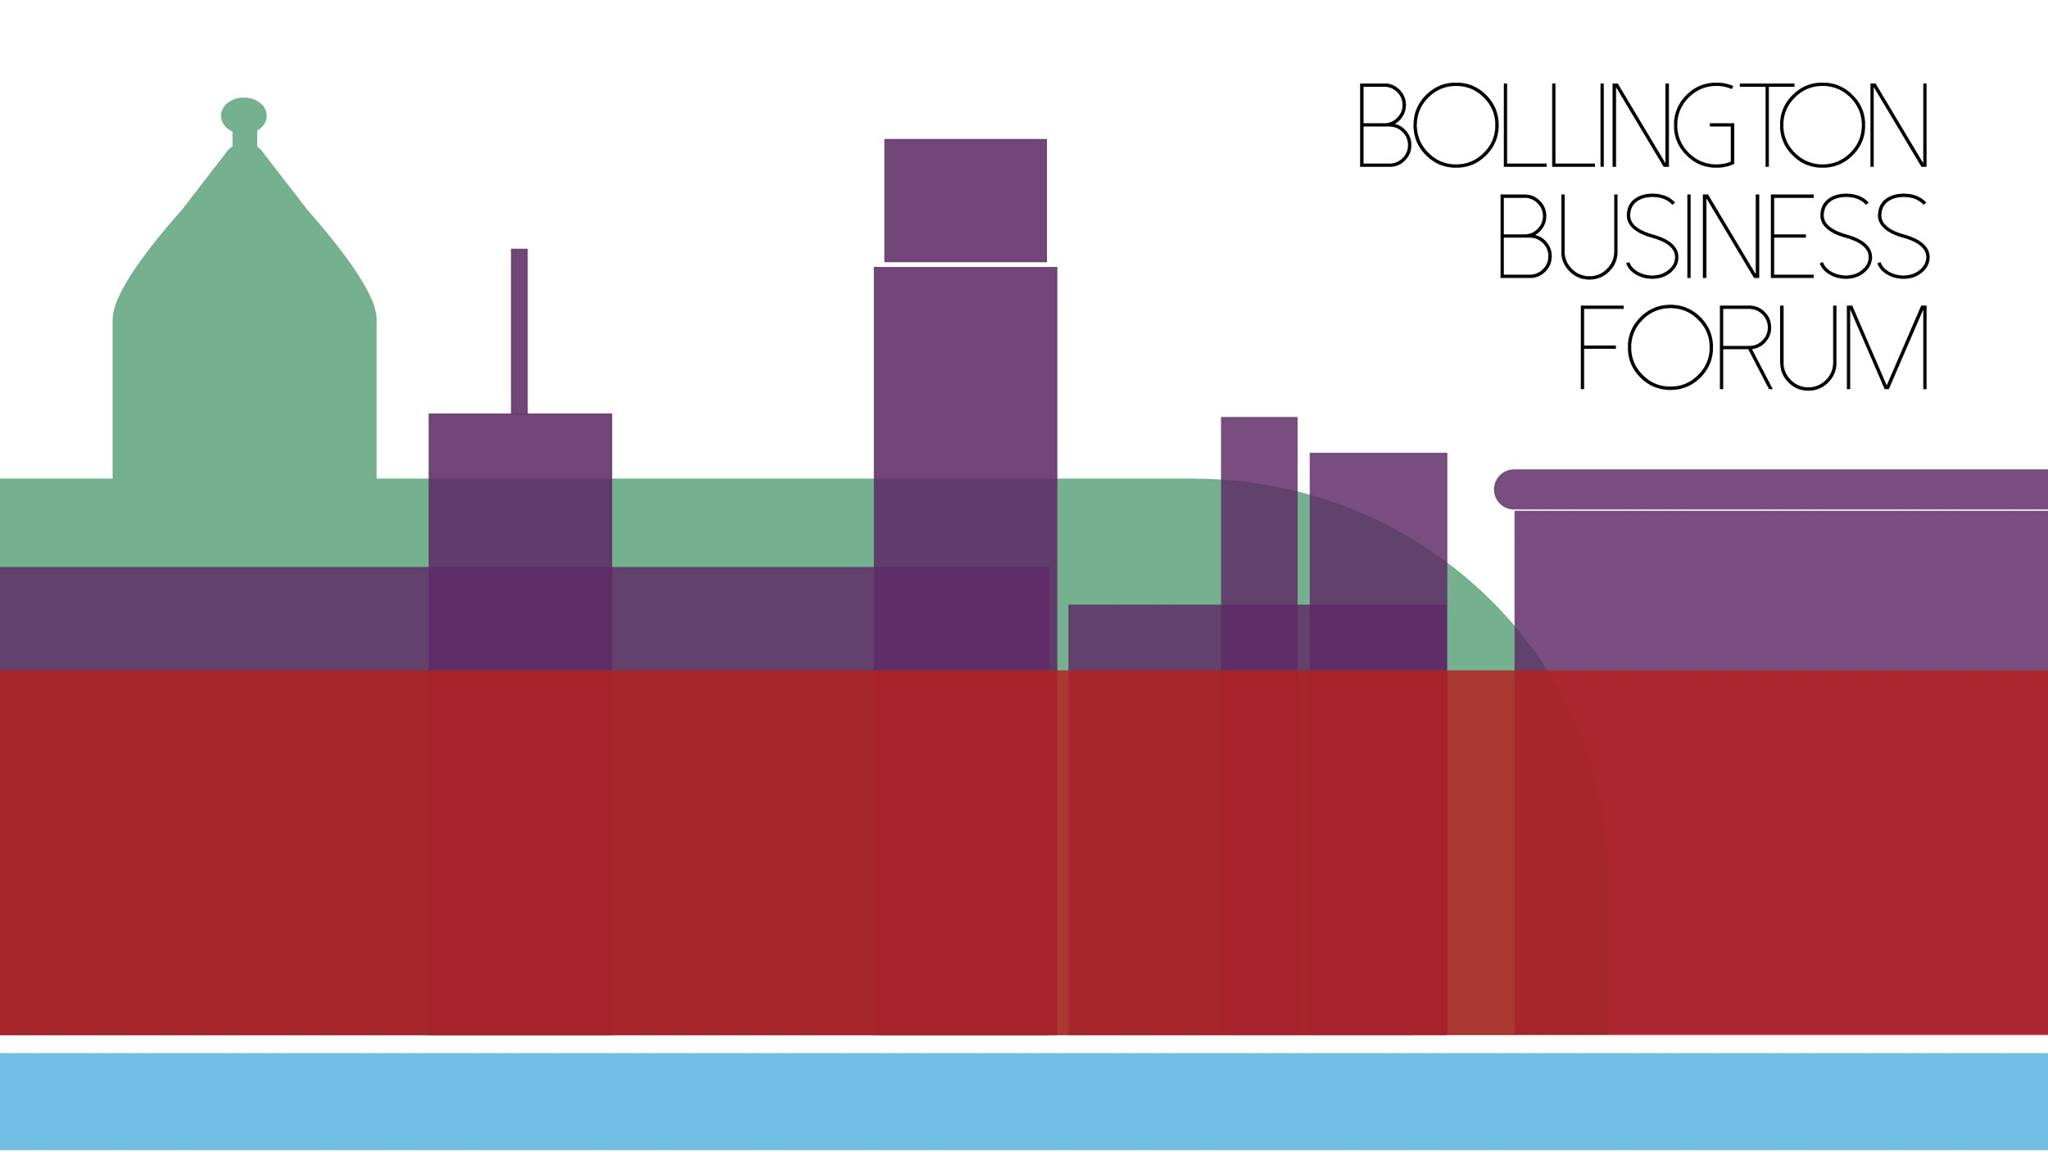 Bollington Business Forum